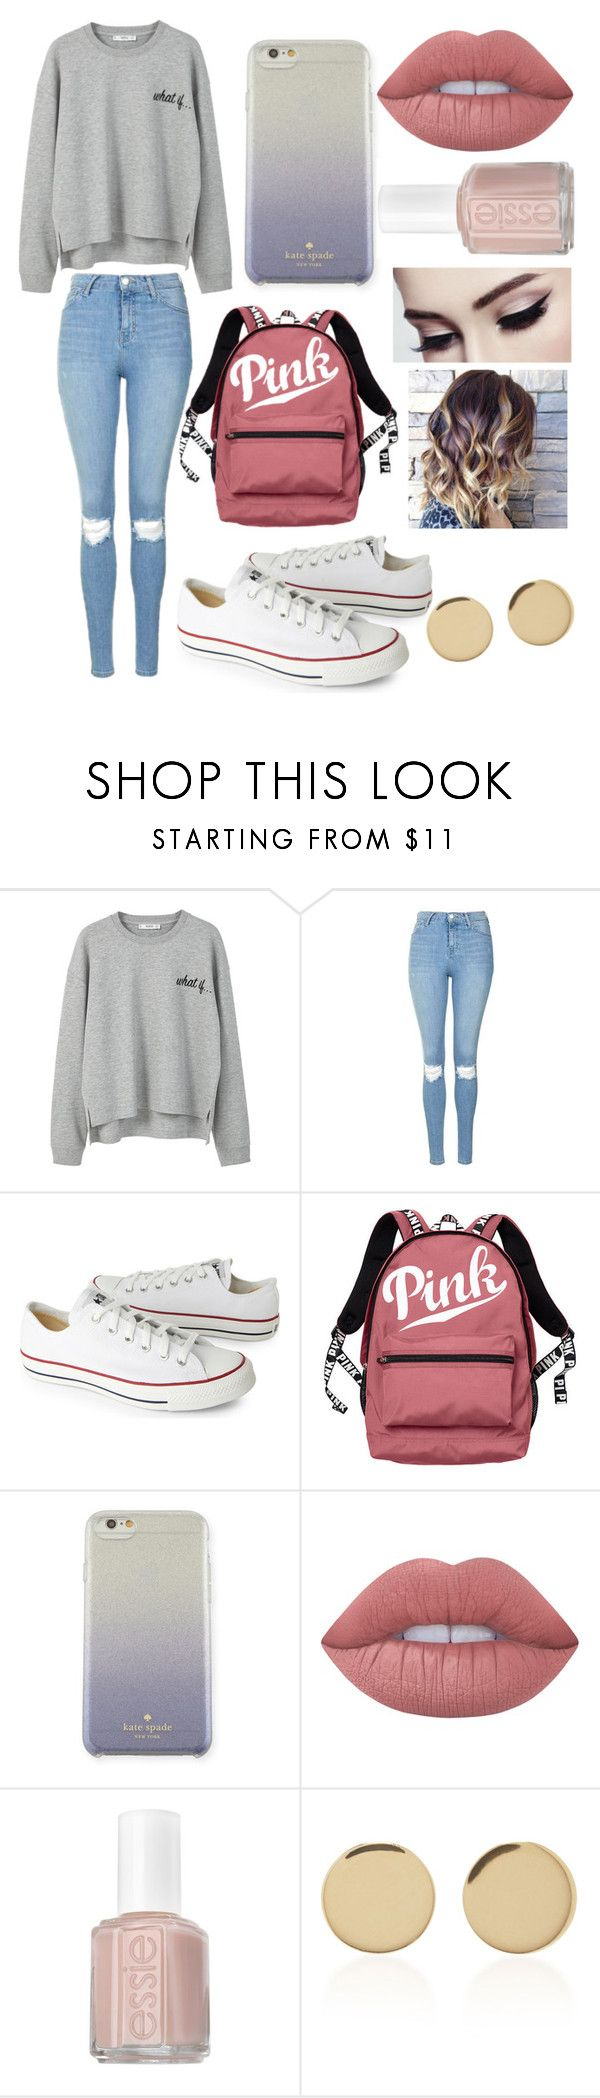 """""""A Casual School Day"""" by amirah-lockett ❤ liked on Polyvore featuring MANGO, Topshop, Converse, Victoria's Secret, Kate Spade, Lime Crime, Essie and Magdalena Frackowiak"""